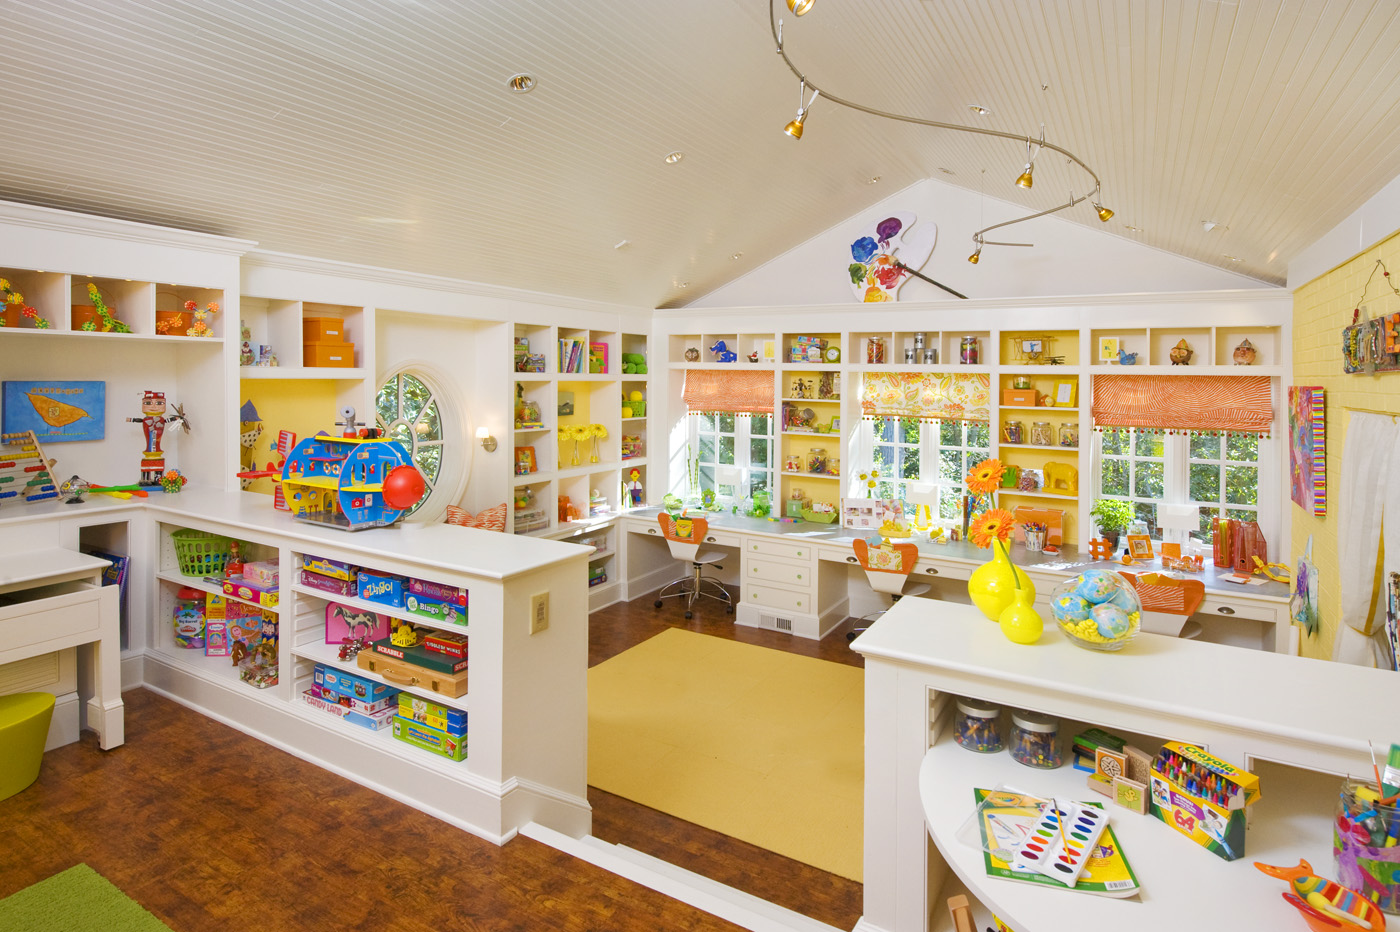 Craft Room Ideas for Kids with Raised Ceiling and Yellow and White Color Scheme